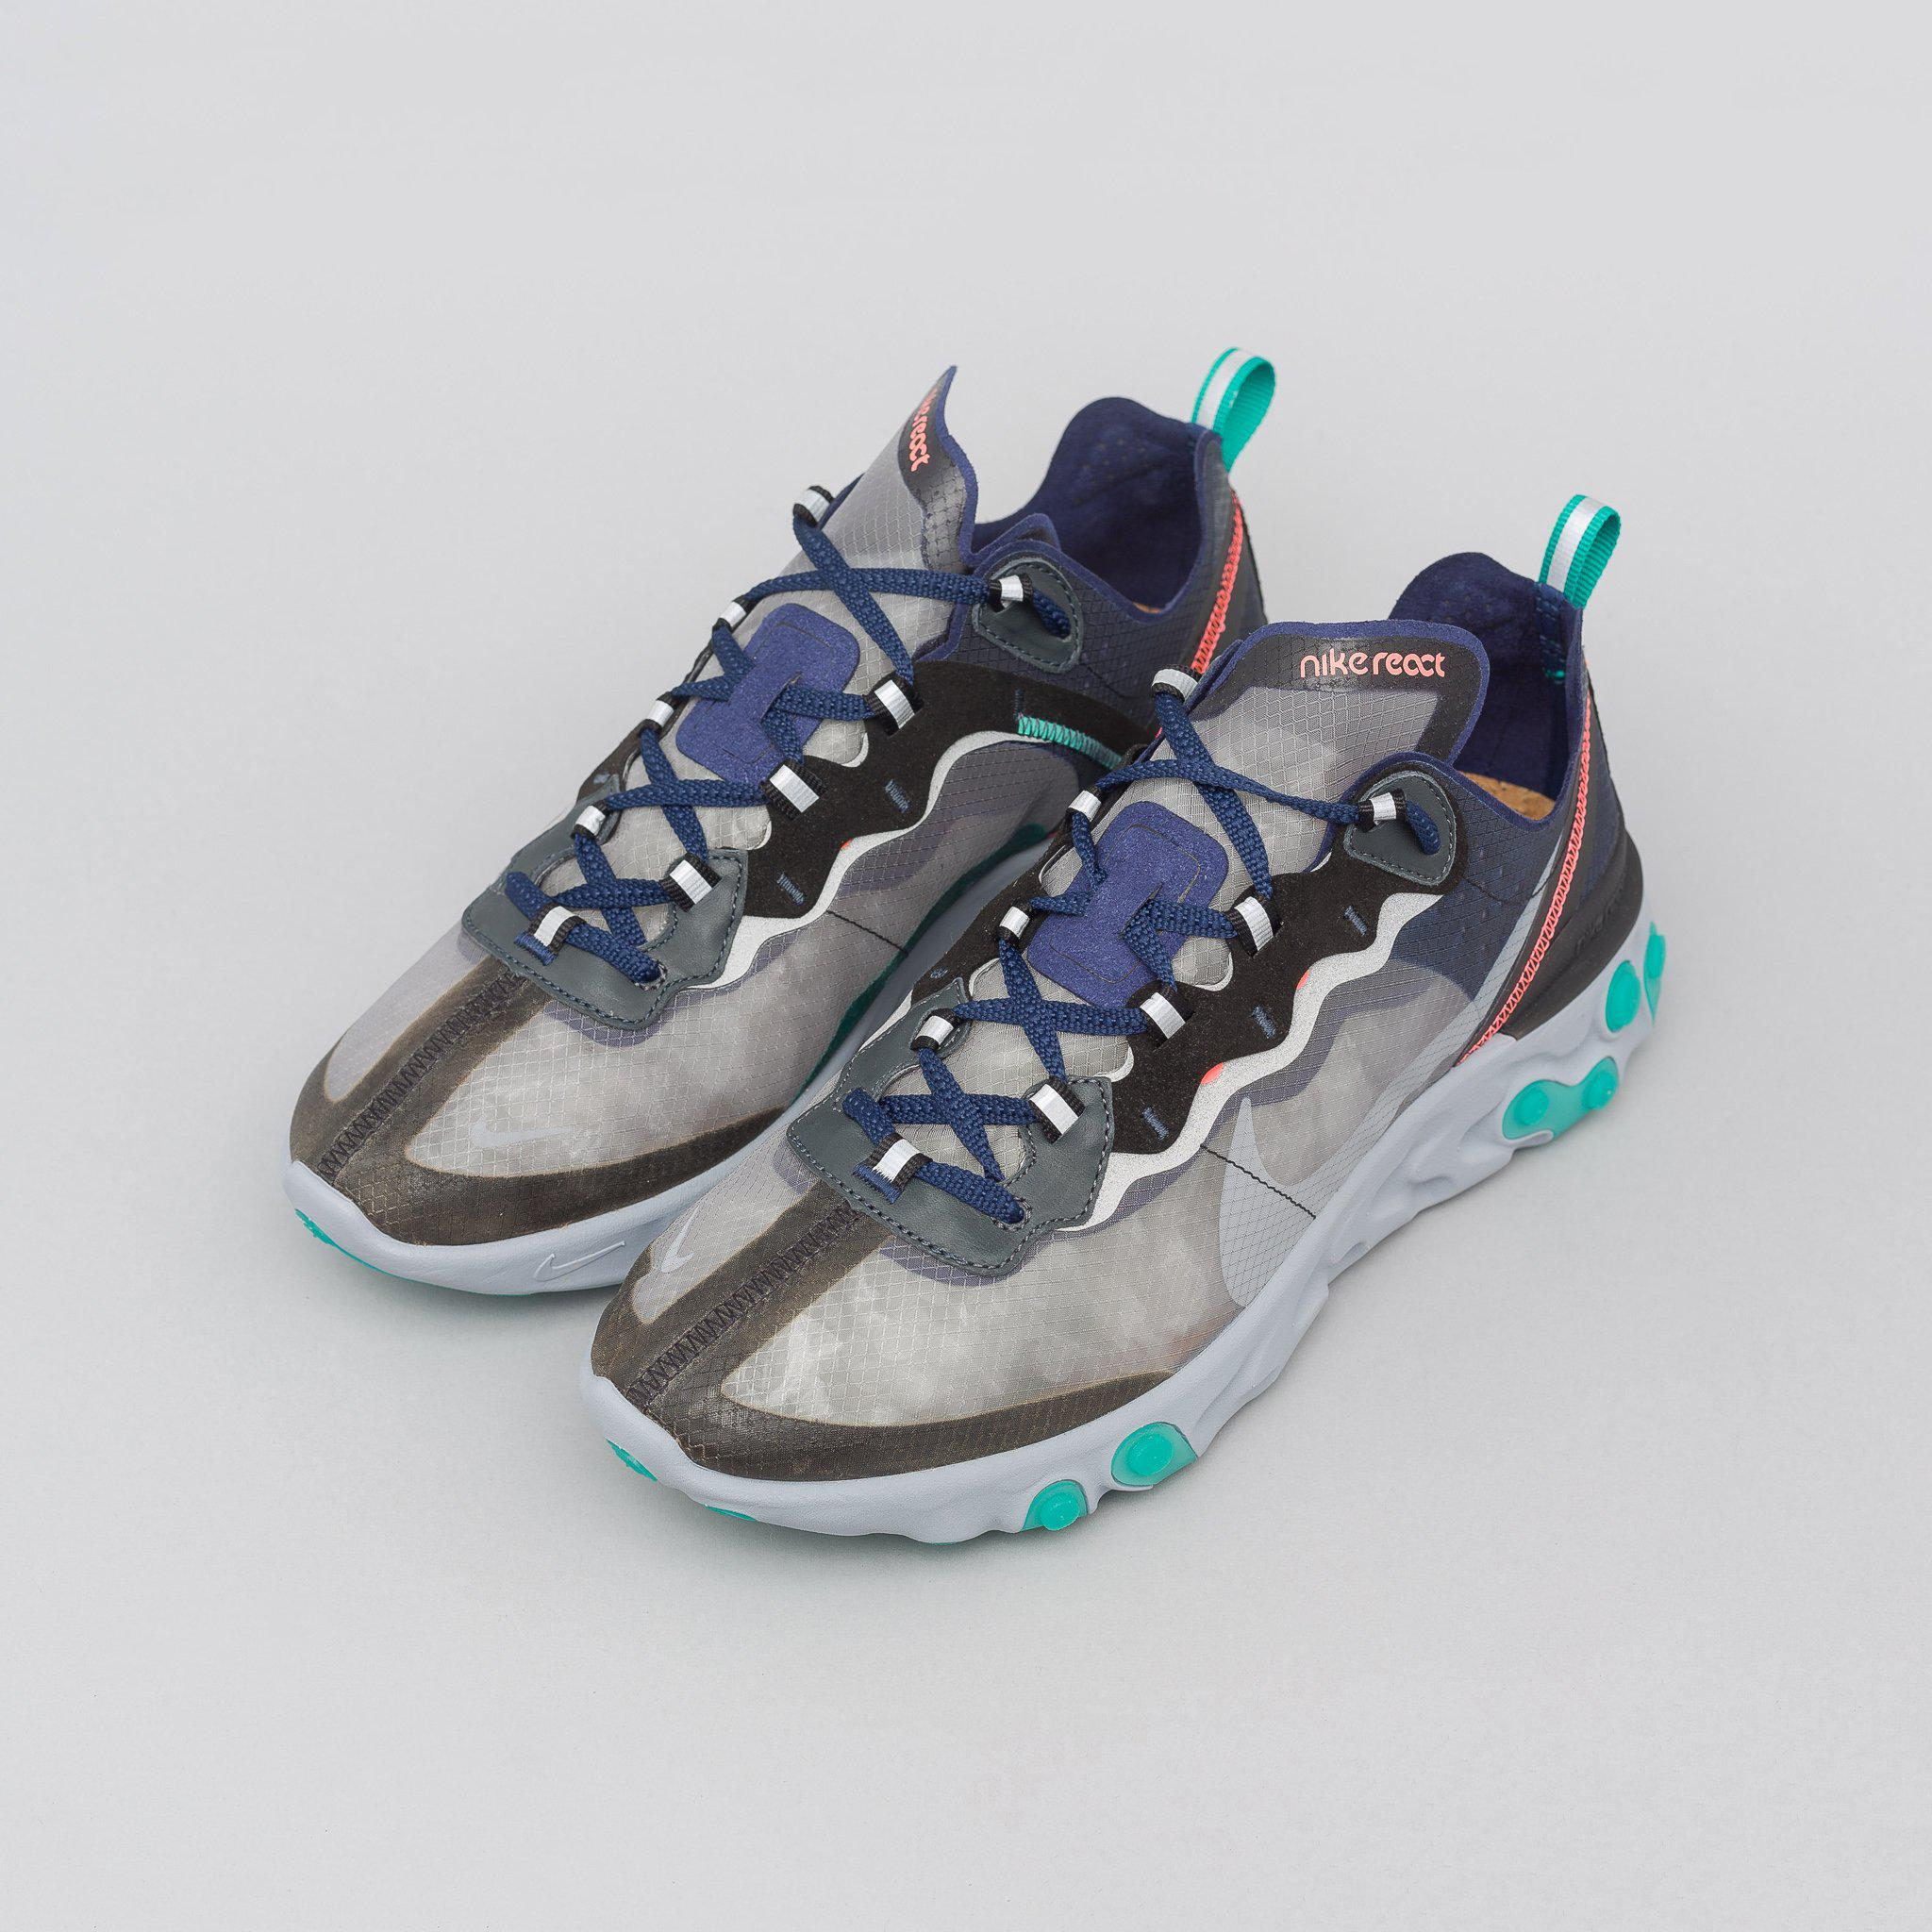 0f6a865e28a1 Lyst - Nike React Element 87 In Black midnight Navy neptune Green in ...